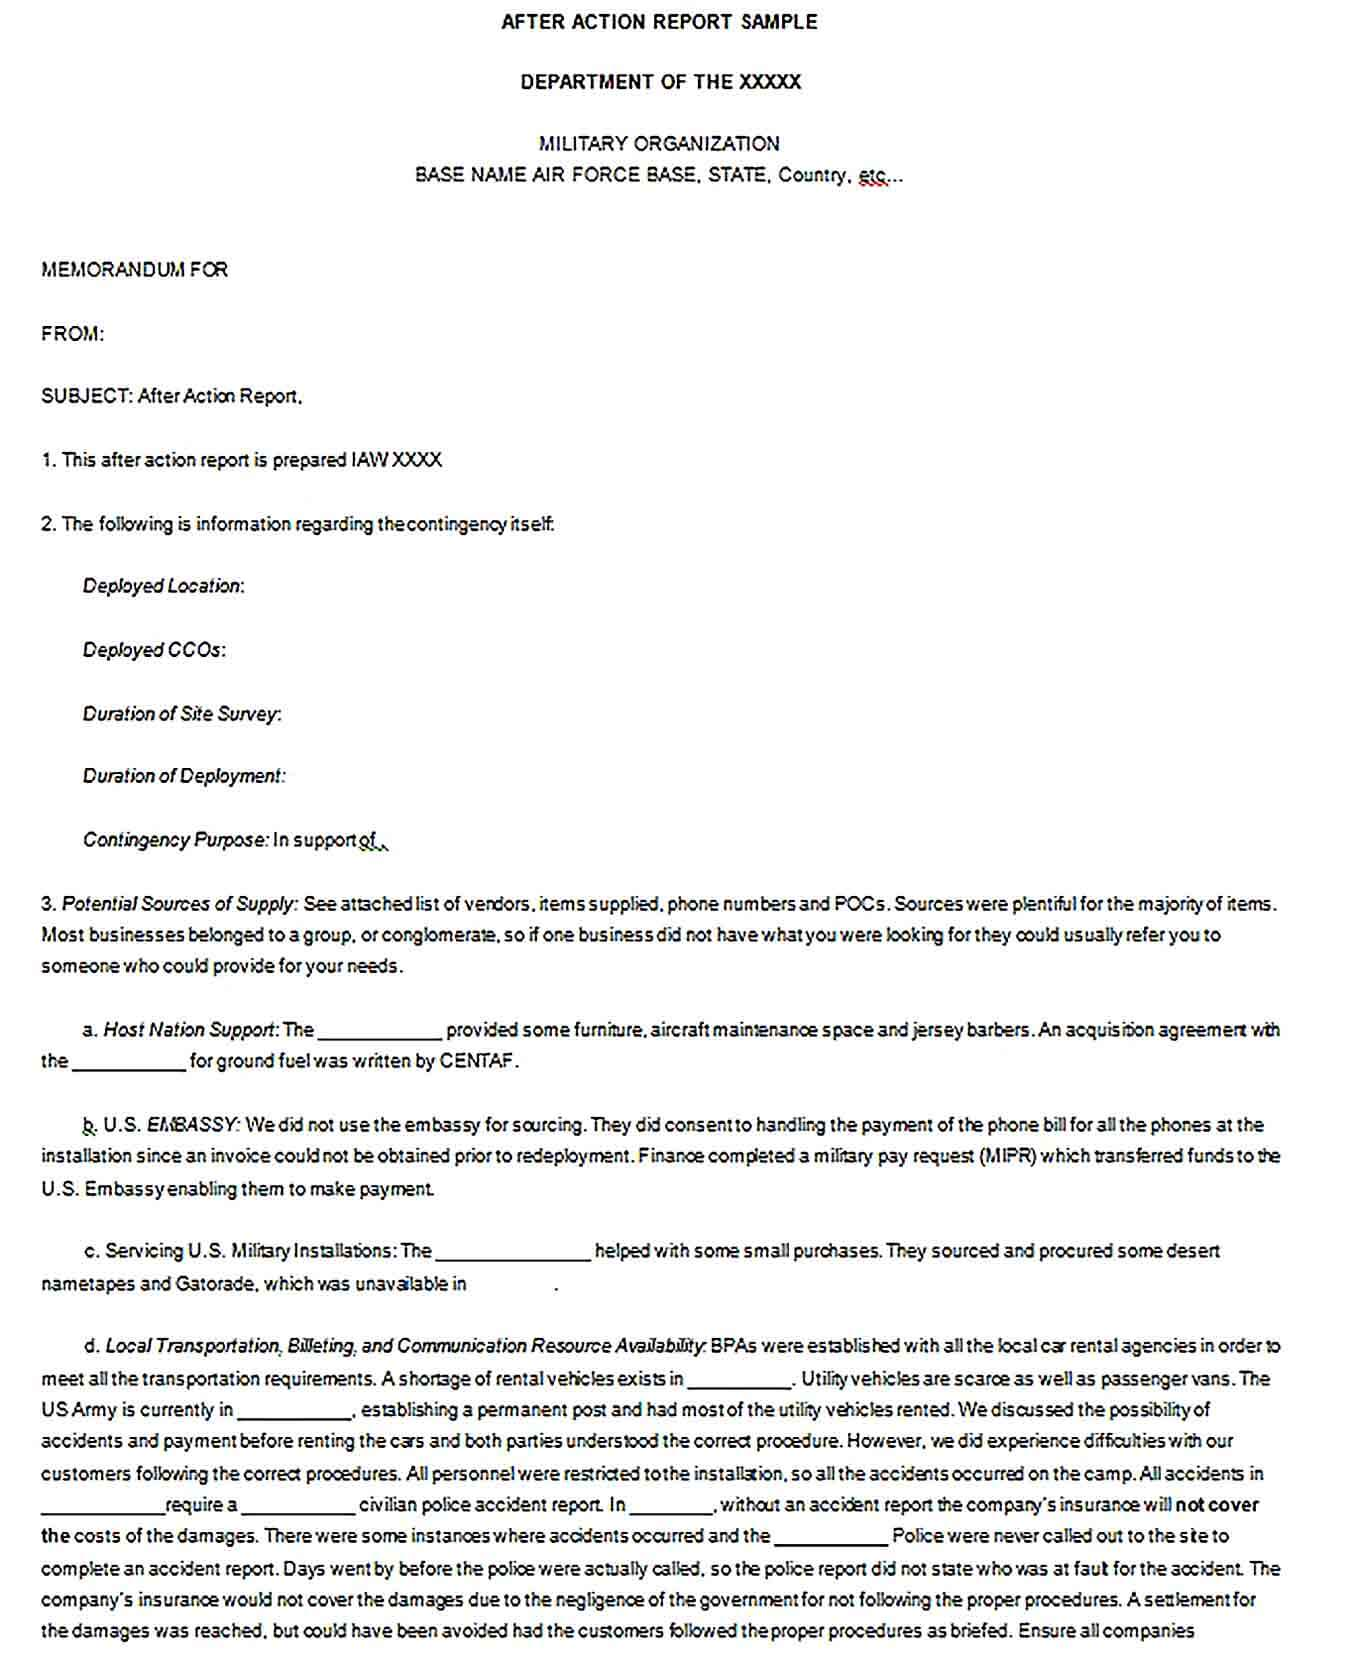 Sample After Action Police Report Template